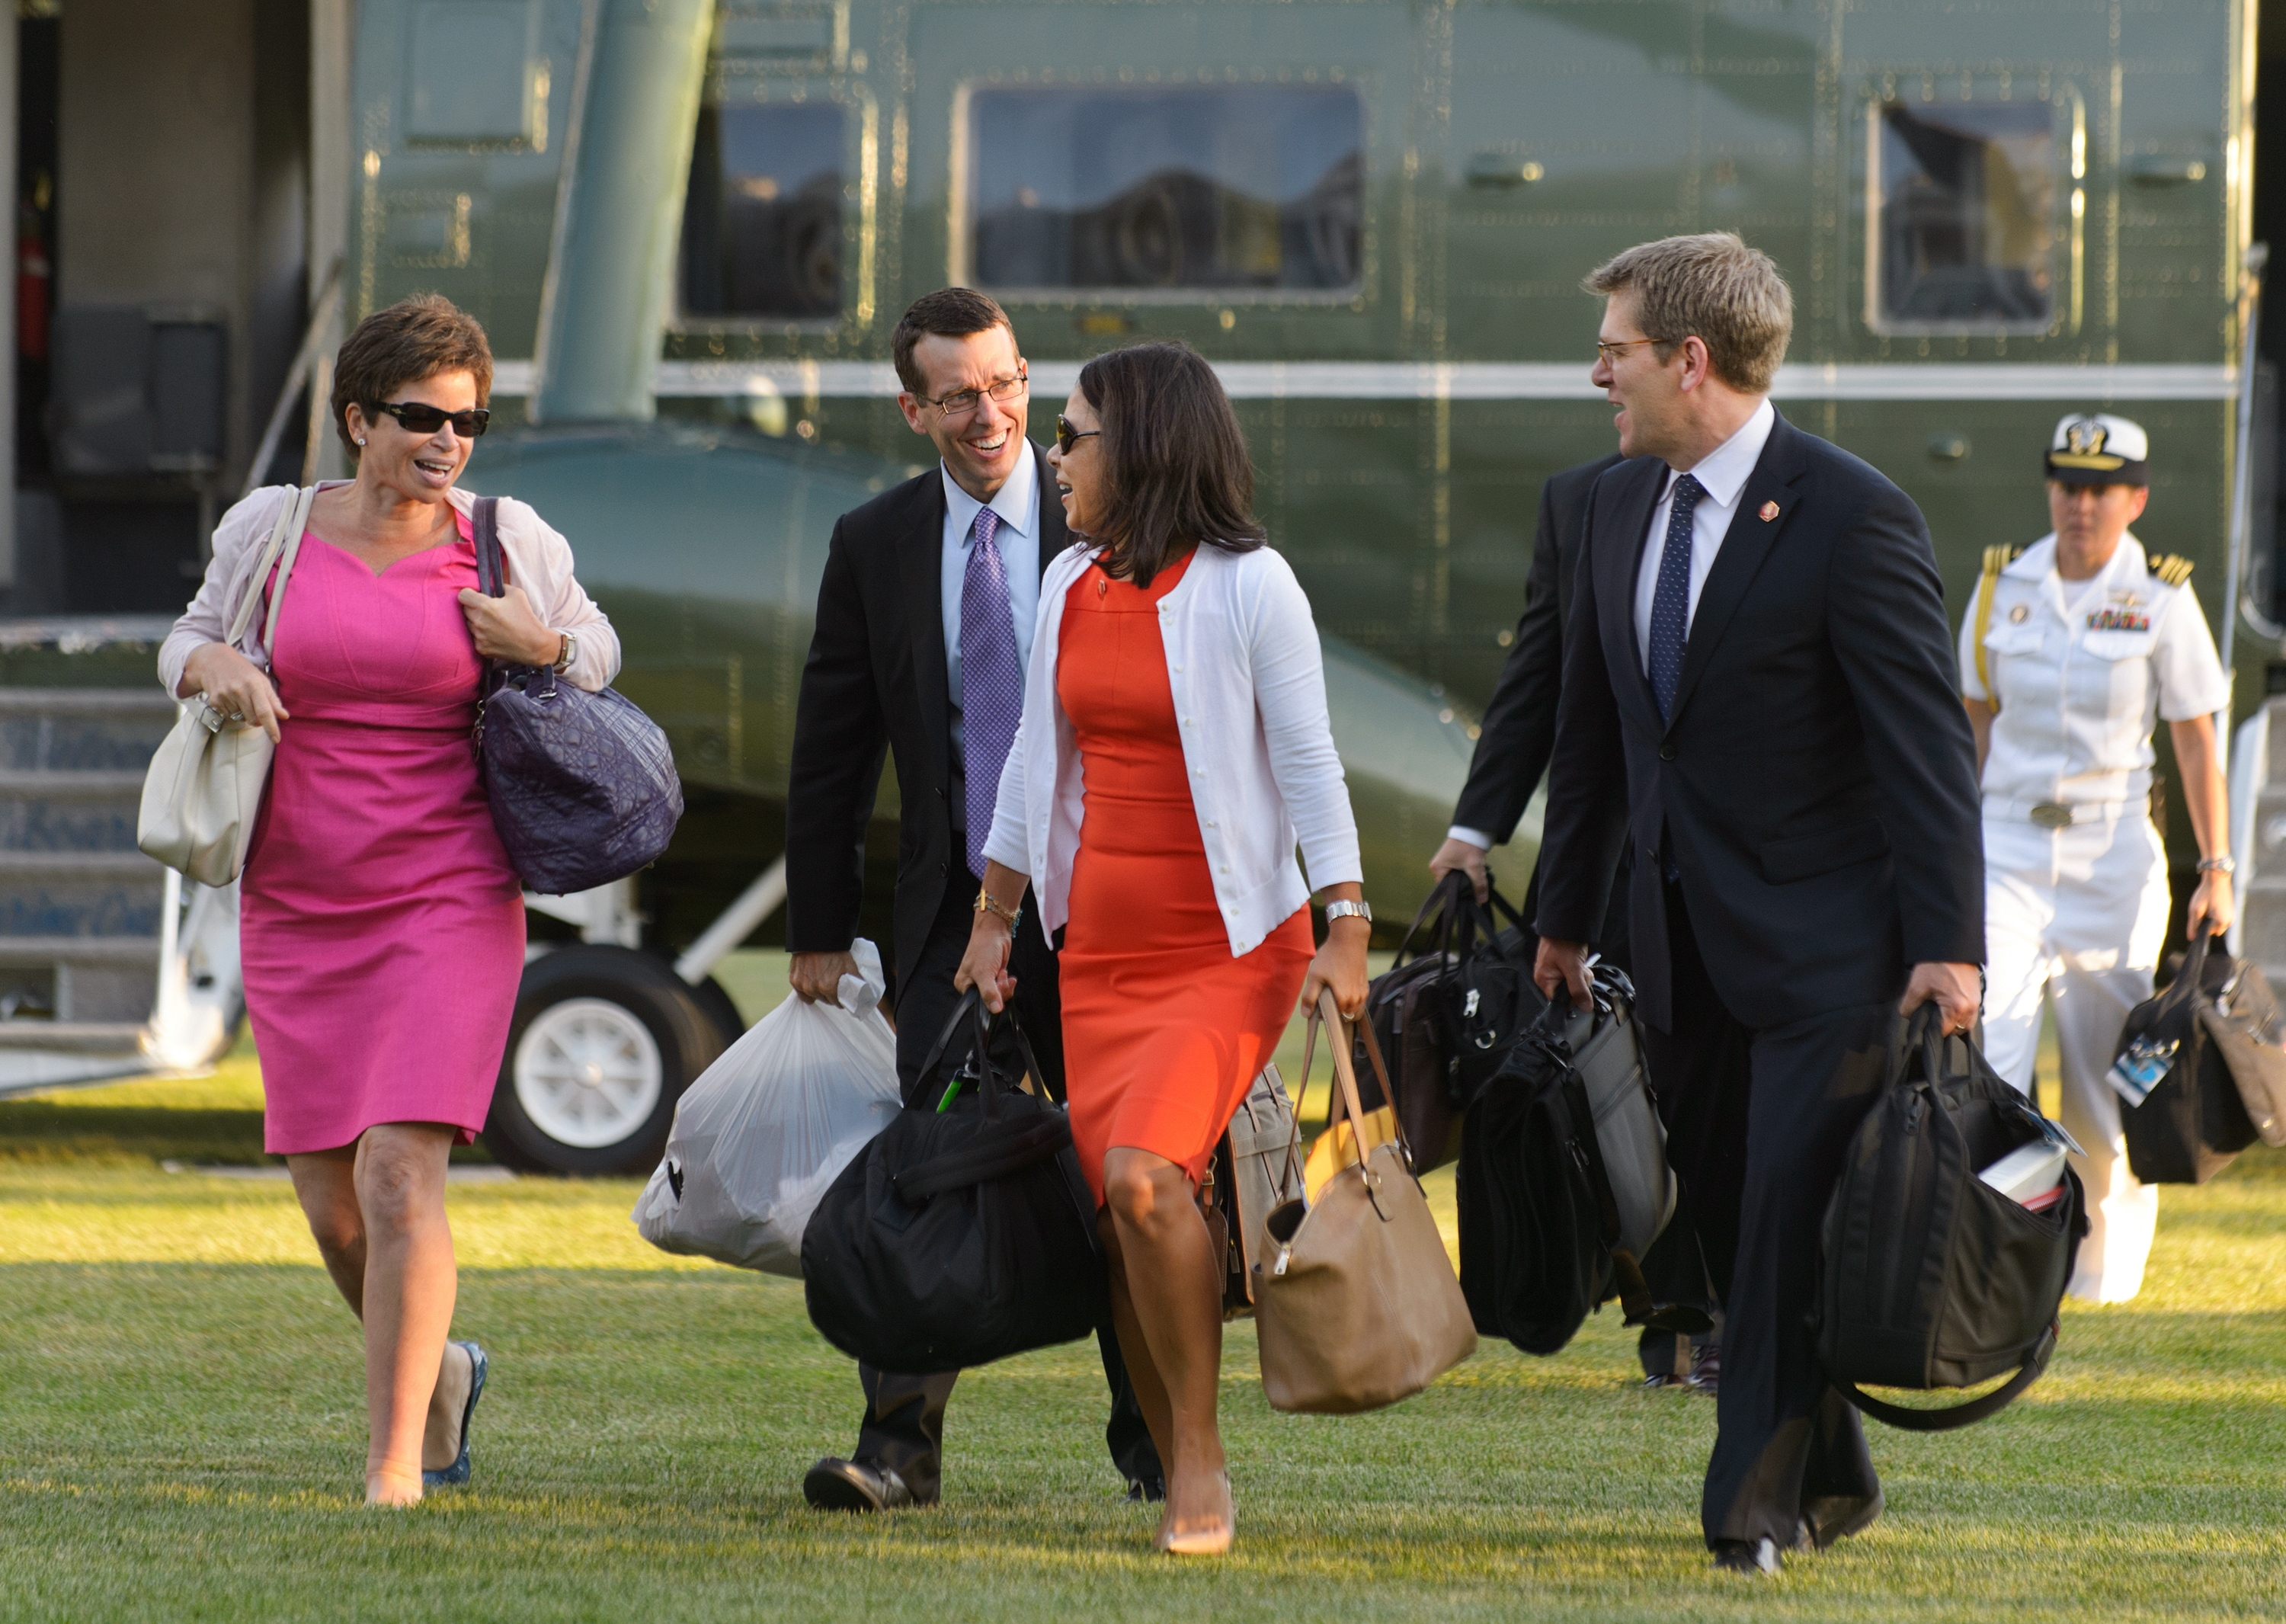 From left: Senior White House Advisors Valerie Jarret, and David Plouffe, White House Deptuy Chief of Staff Nancy Ann DeParle, and White House Press Secretary Jay Carney walk across the South Lawn upon the return to the White House on Augu. 29, 2012 in Washington.